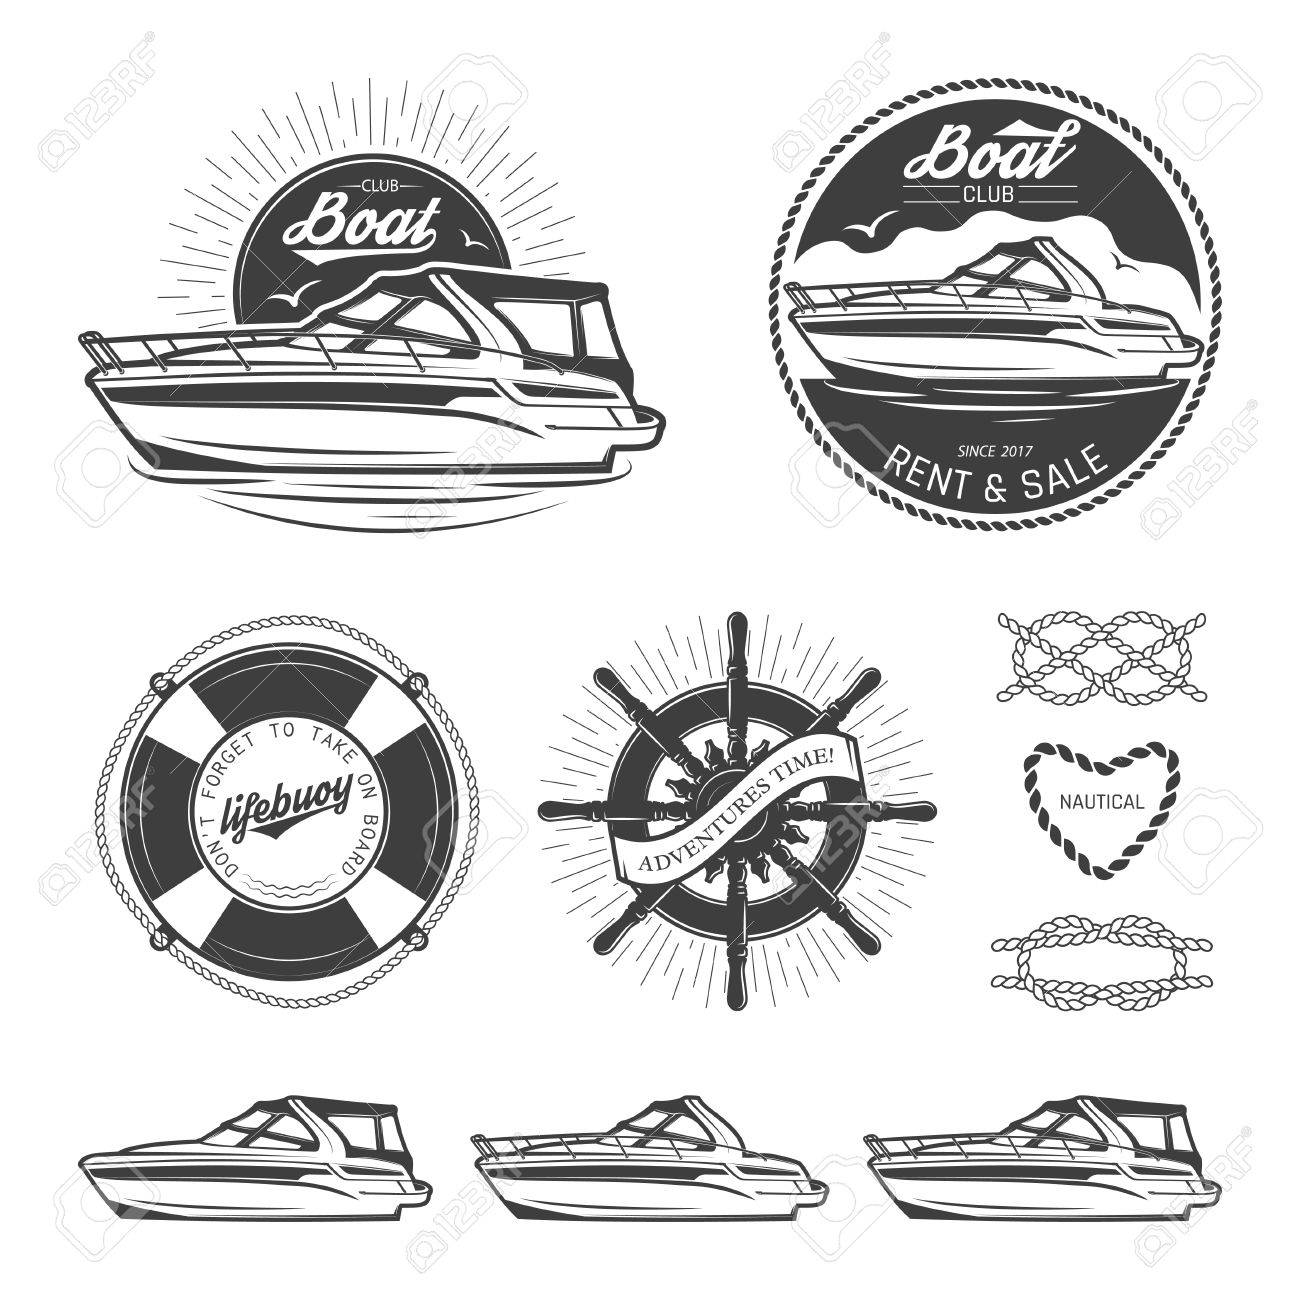 Set of vintage nautical logos, labels, emblems and design elements